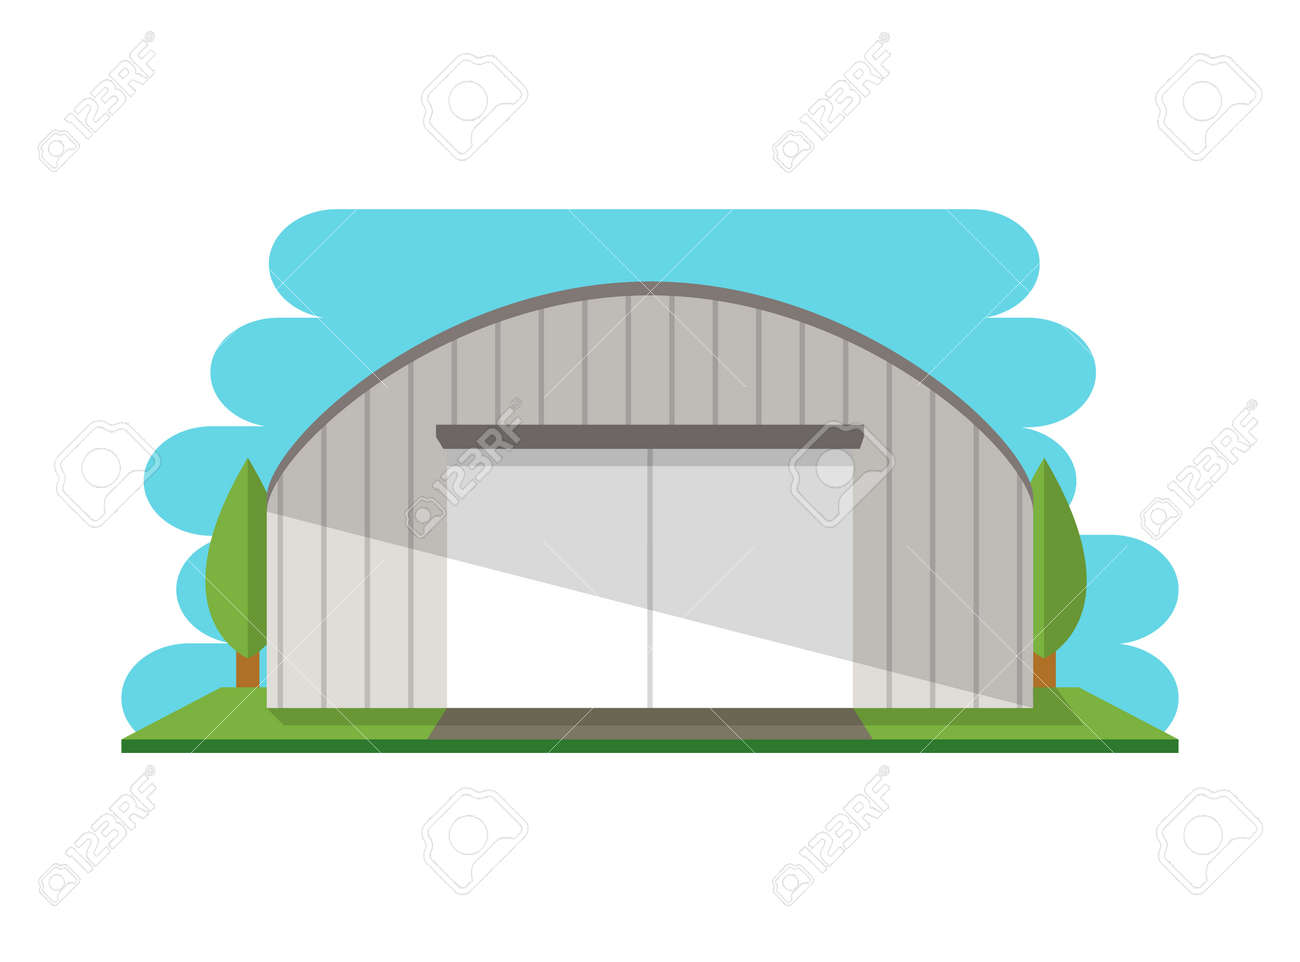 Modern storage terminal isolated icon. Business real estate, front view cargo storehouse vector illustration in flat design. - 83670644